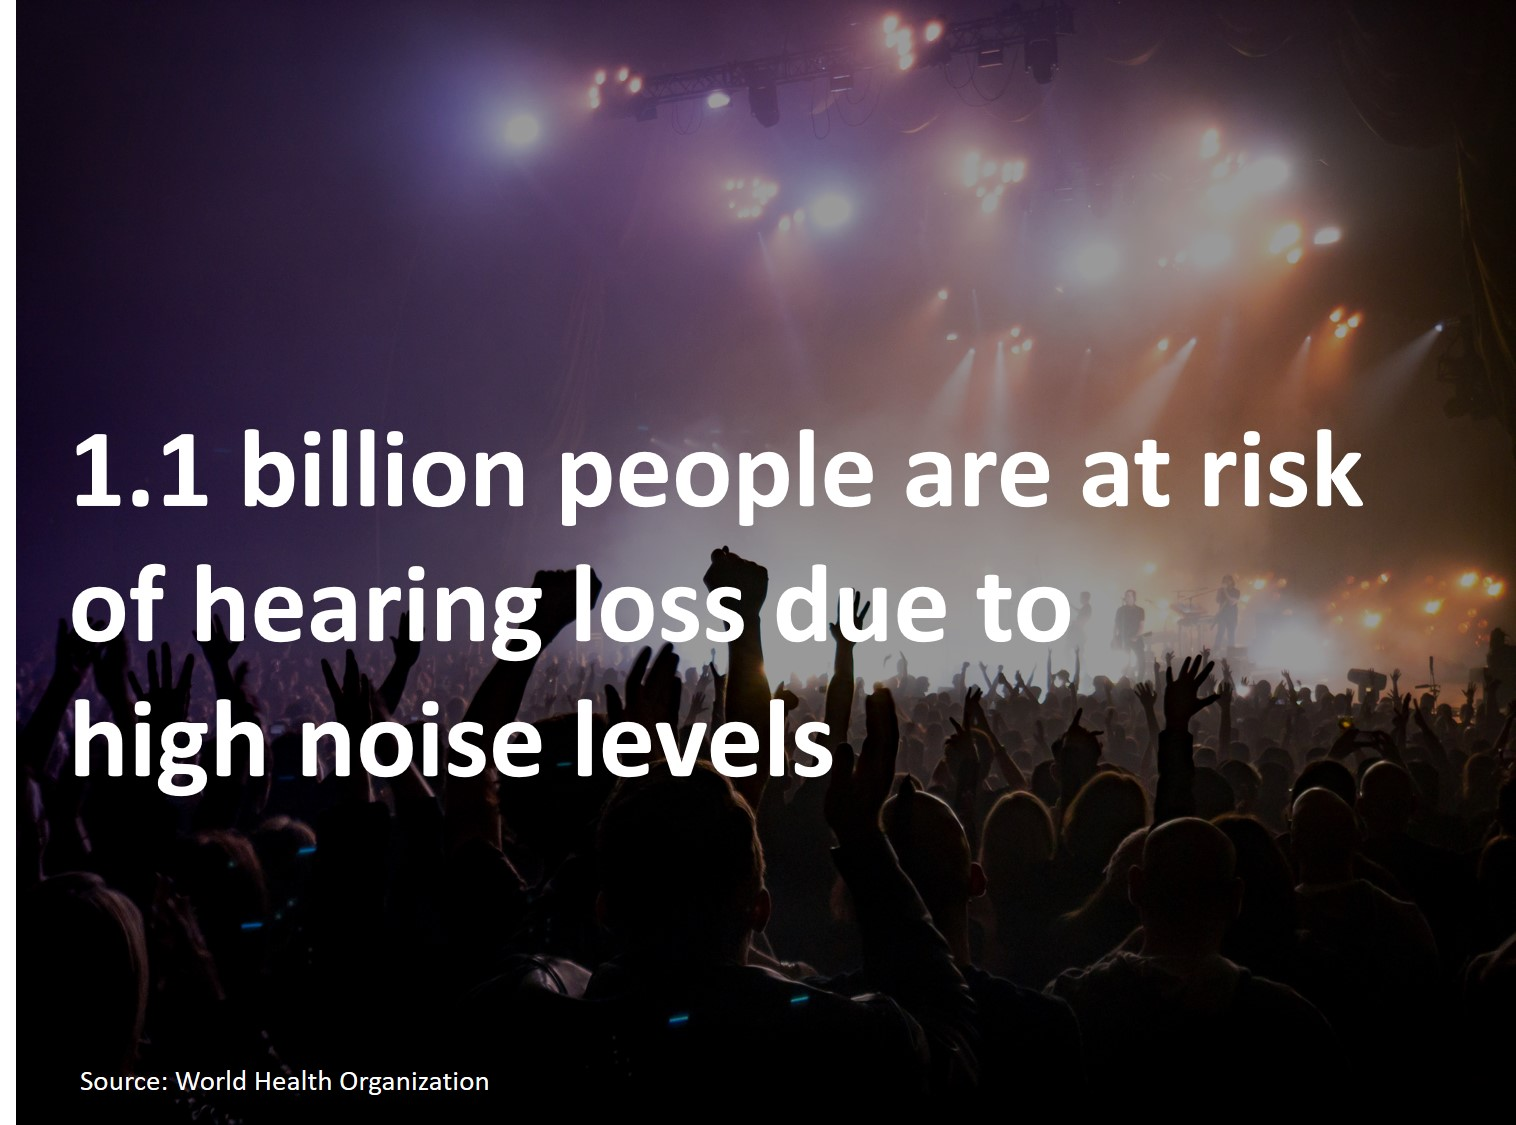 1.1 billion people are at risk of hearing damage due to harmful noise levels